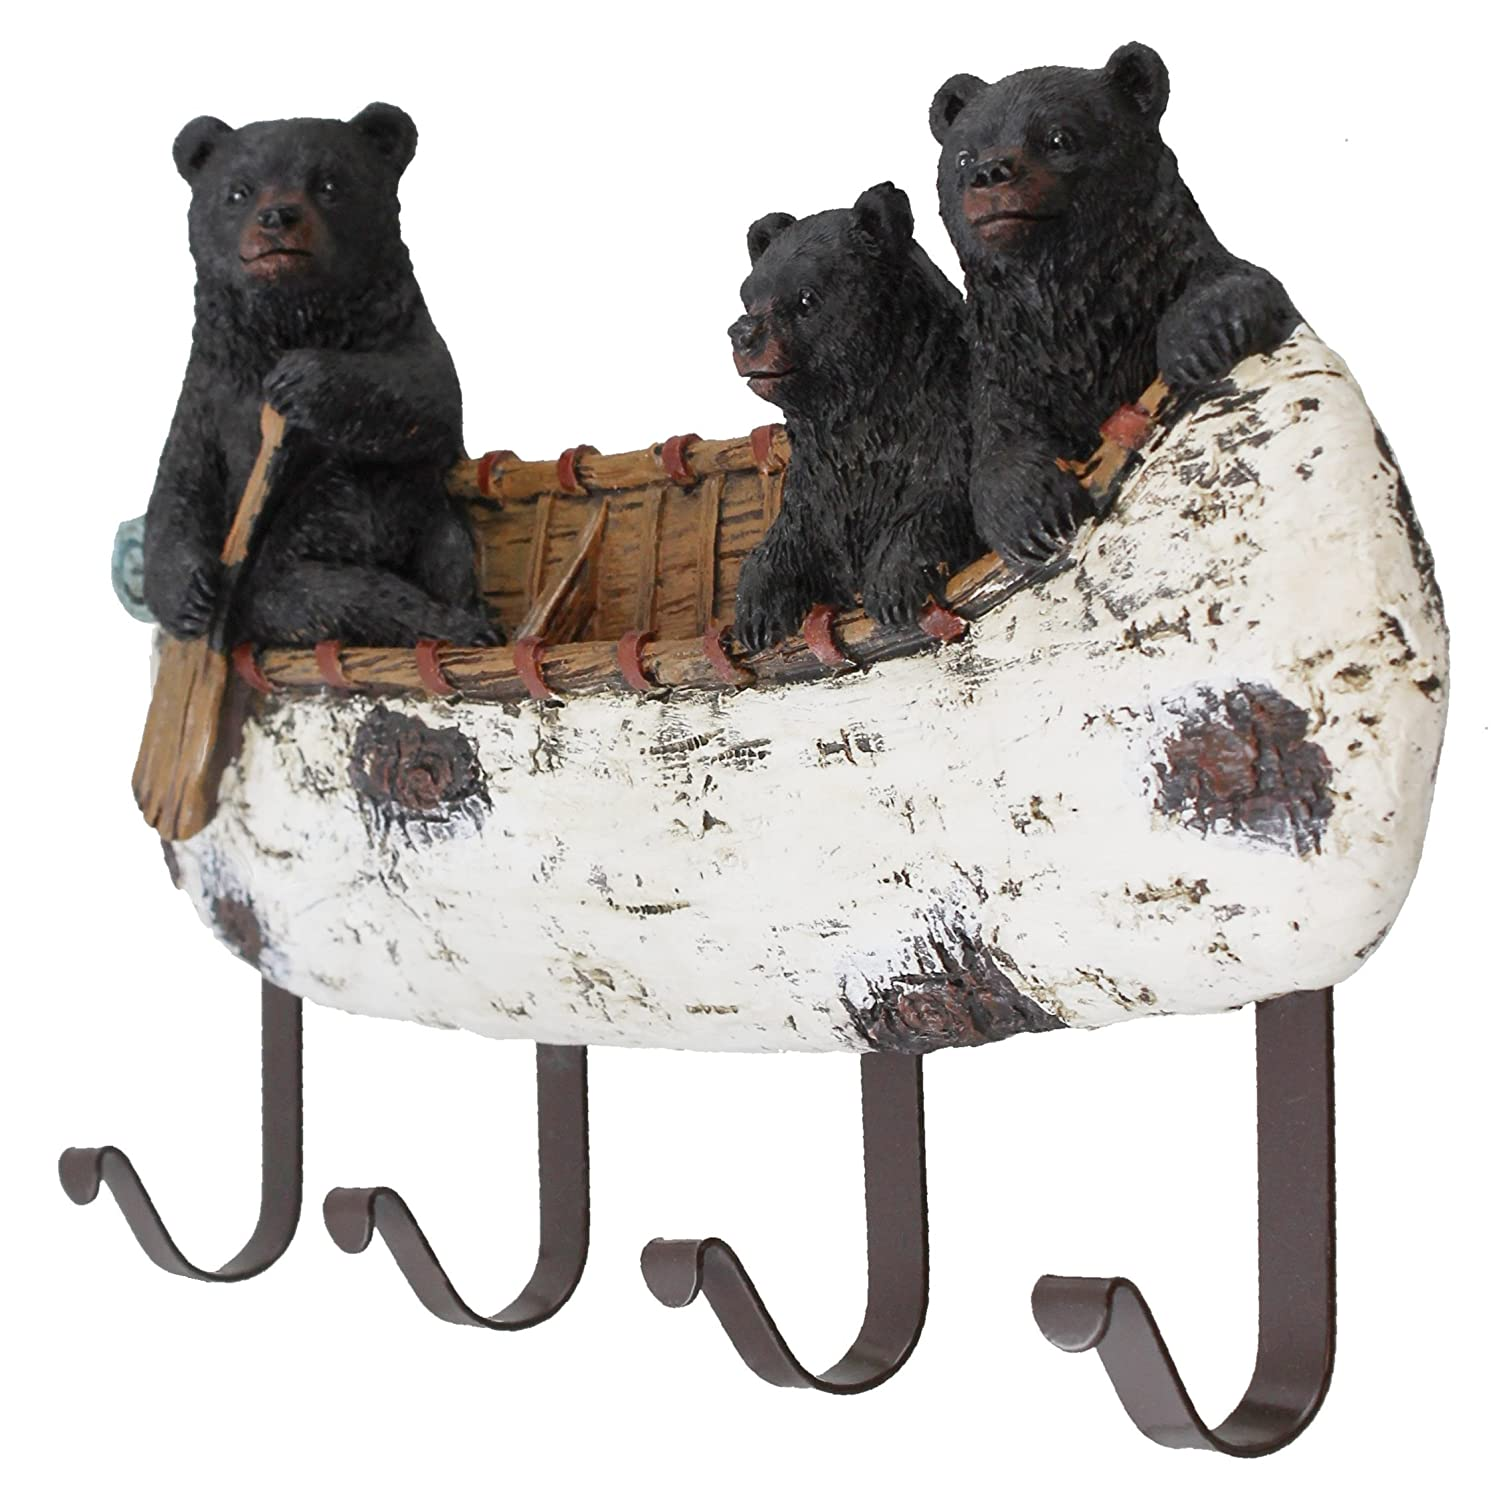 Amazon.com: Oso y cubitos negros para decoración de canoas ...